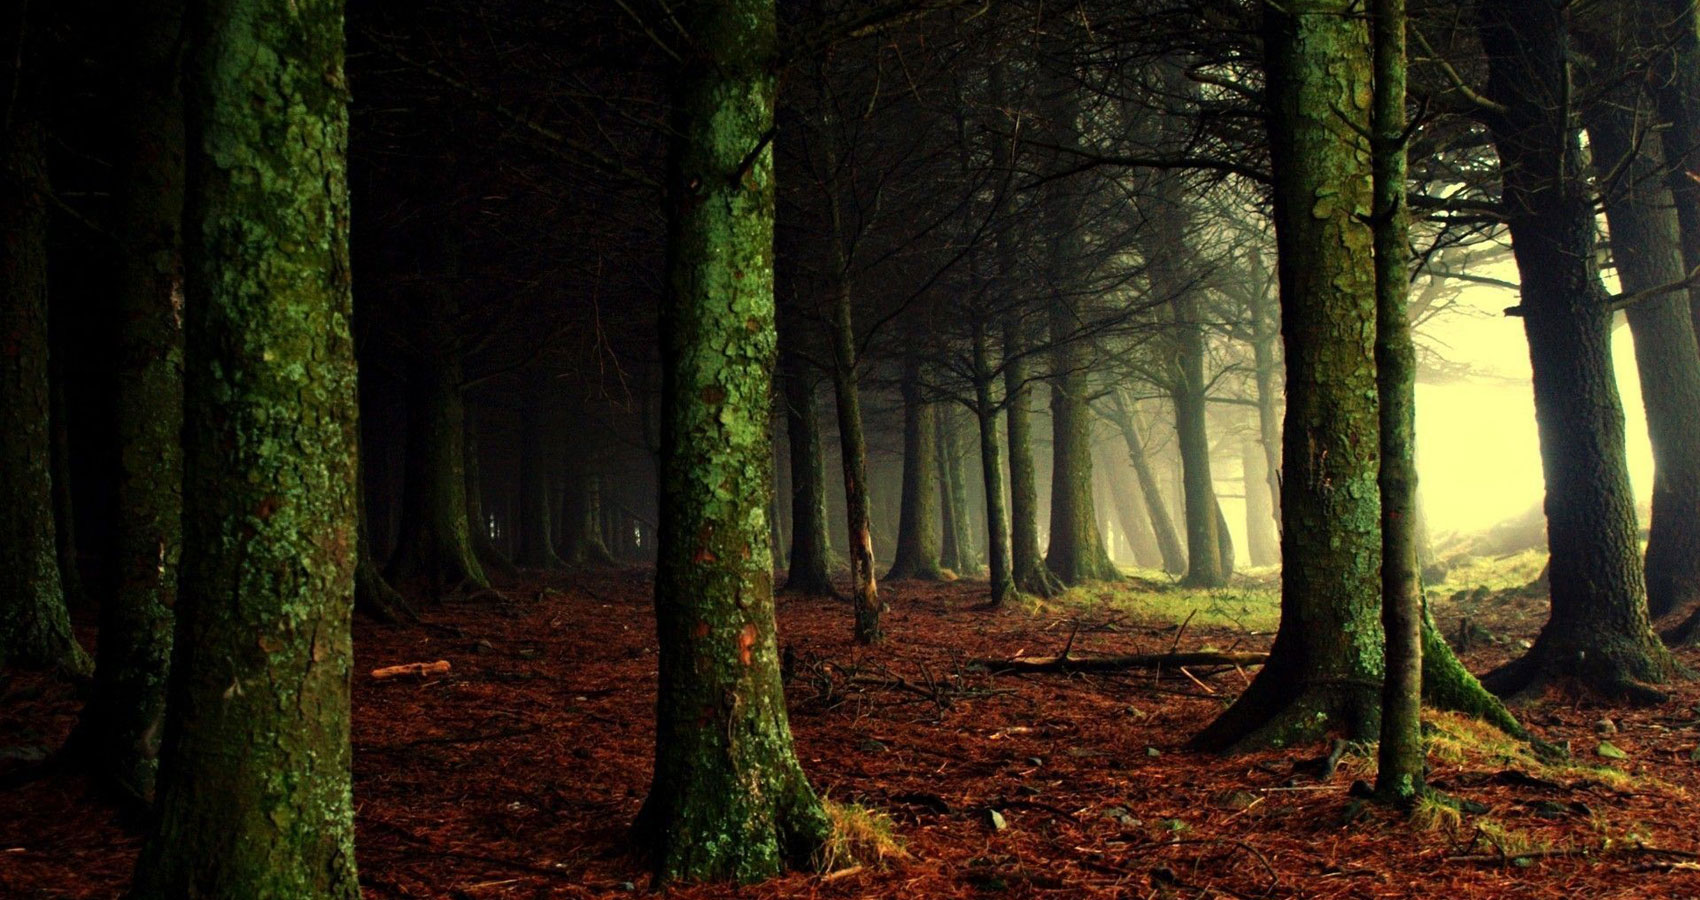 Hiding in the Woods written by Nidhi Gupta at Spillwords.com